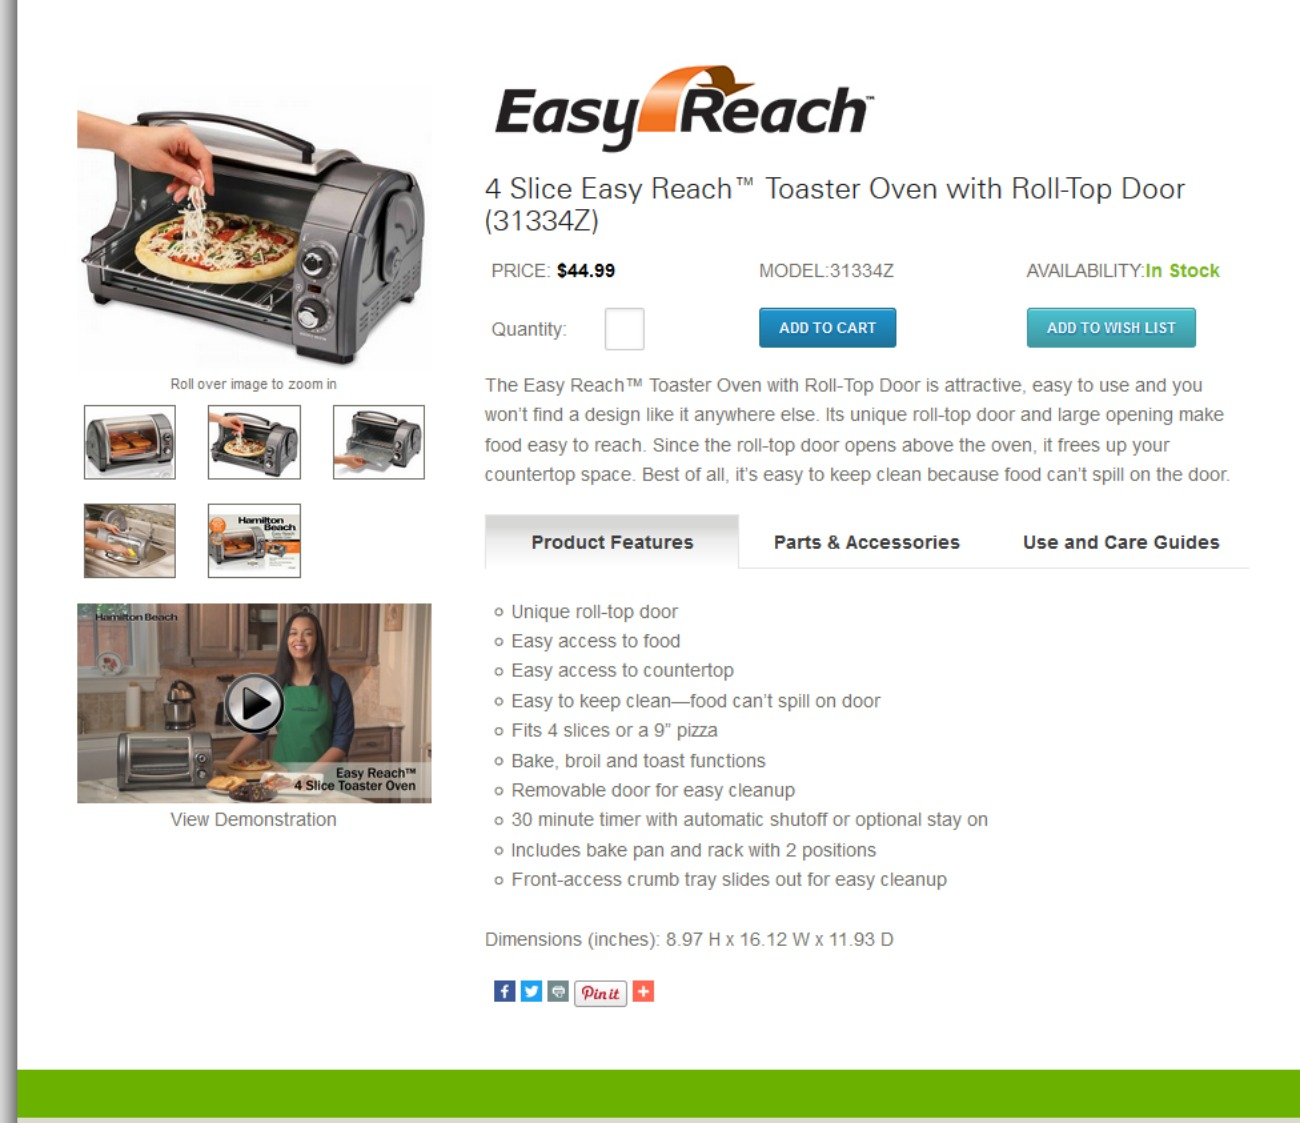 4 Slice Easy Reach™ Toaster Oven with Roll-Top Door